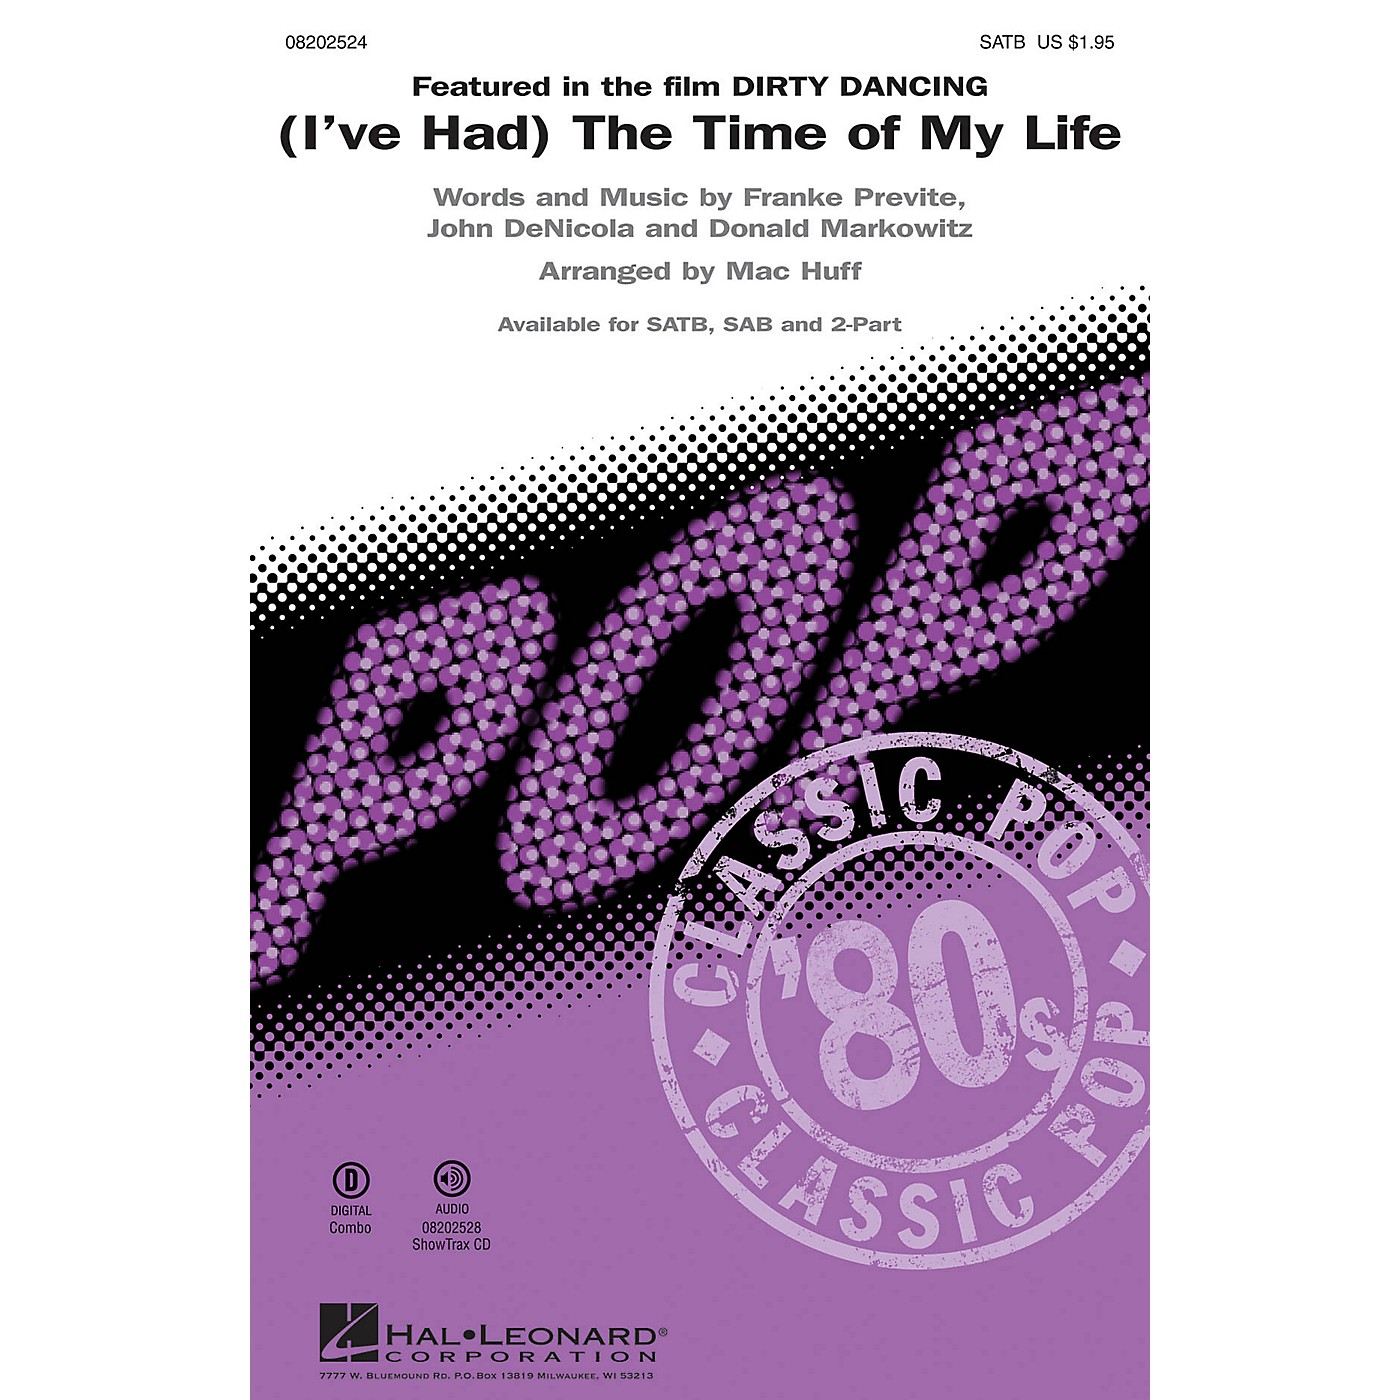 Hal Leonard (I've Had) The Time of My Life (from Dirty Dancing) 2-Part Arranged by Mac Huff thumbnail